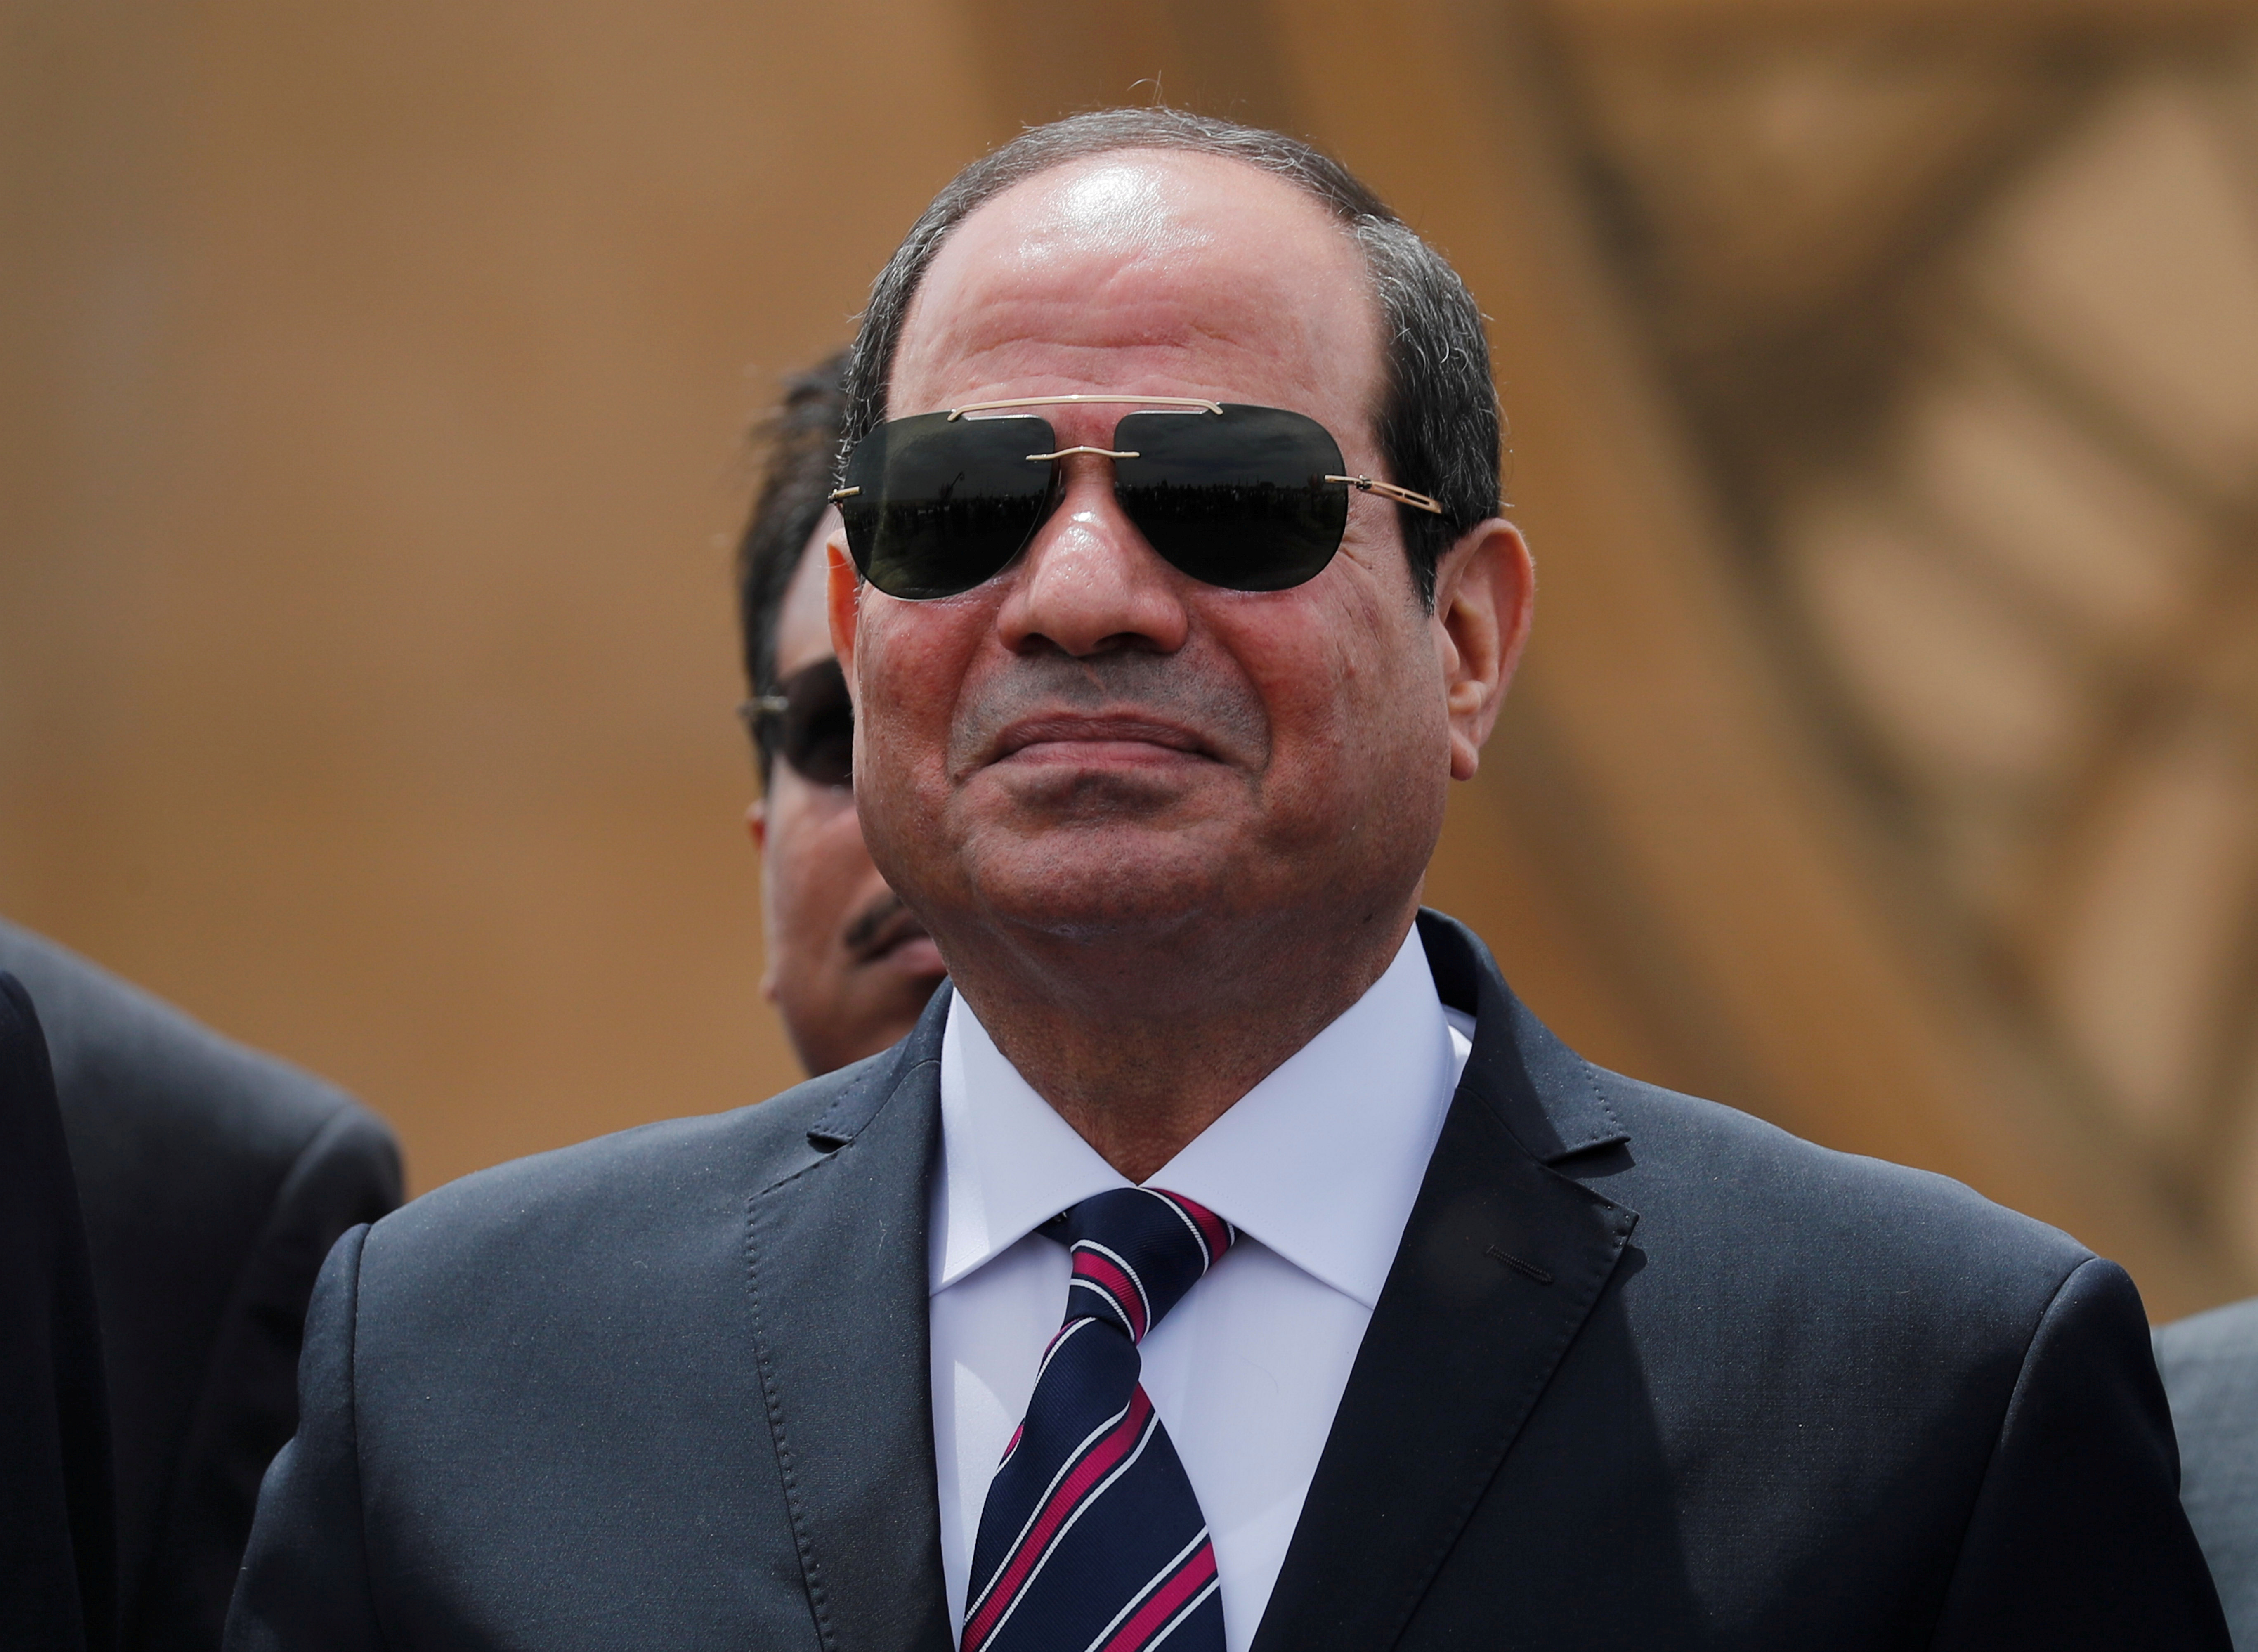 Egyptian President Abdel Fattah al-Sisi attends the opening ceremony of floating bridges and tunnel projects executed under the Suez Canal in Ismailia, Egypt May 5, 2019. REUTERS/Amr Abdallah Dalsh